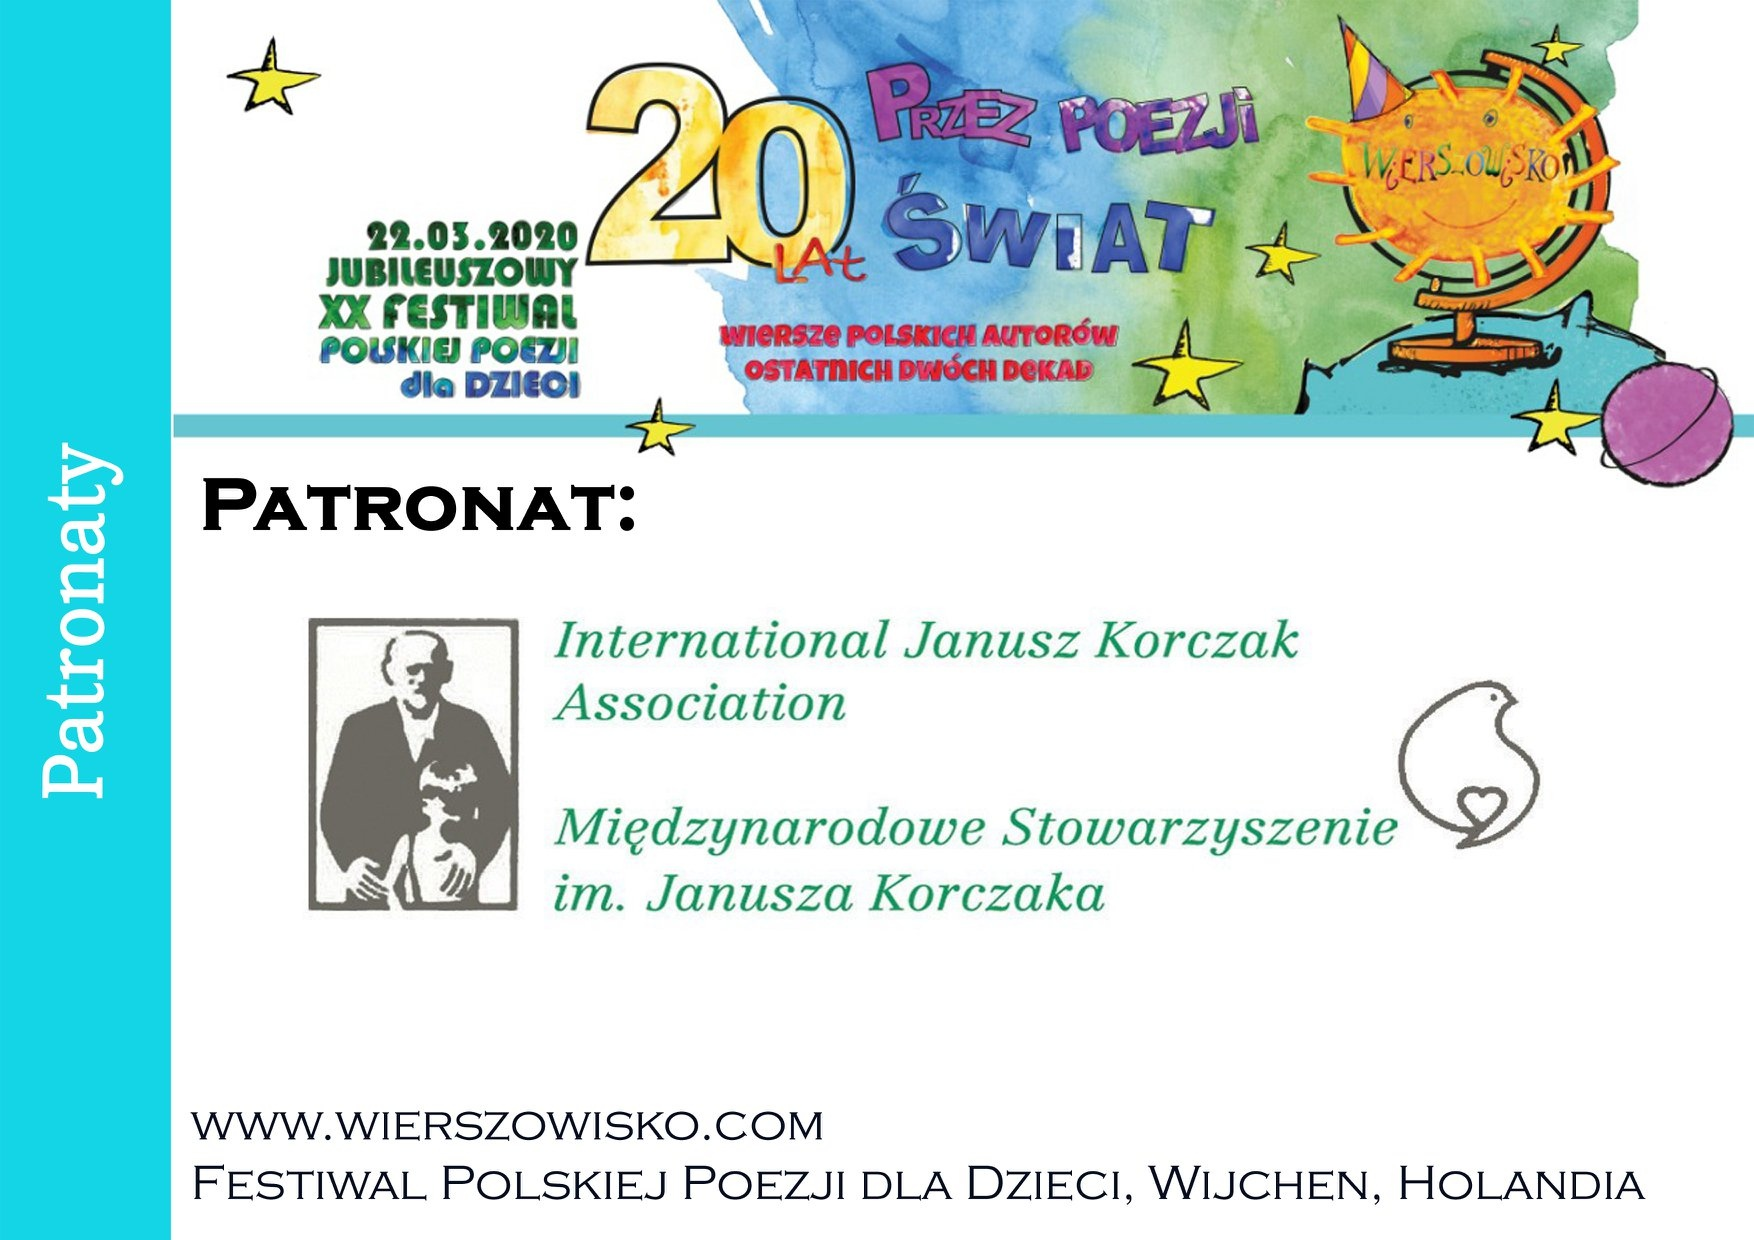 International Janusz Korczak Association